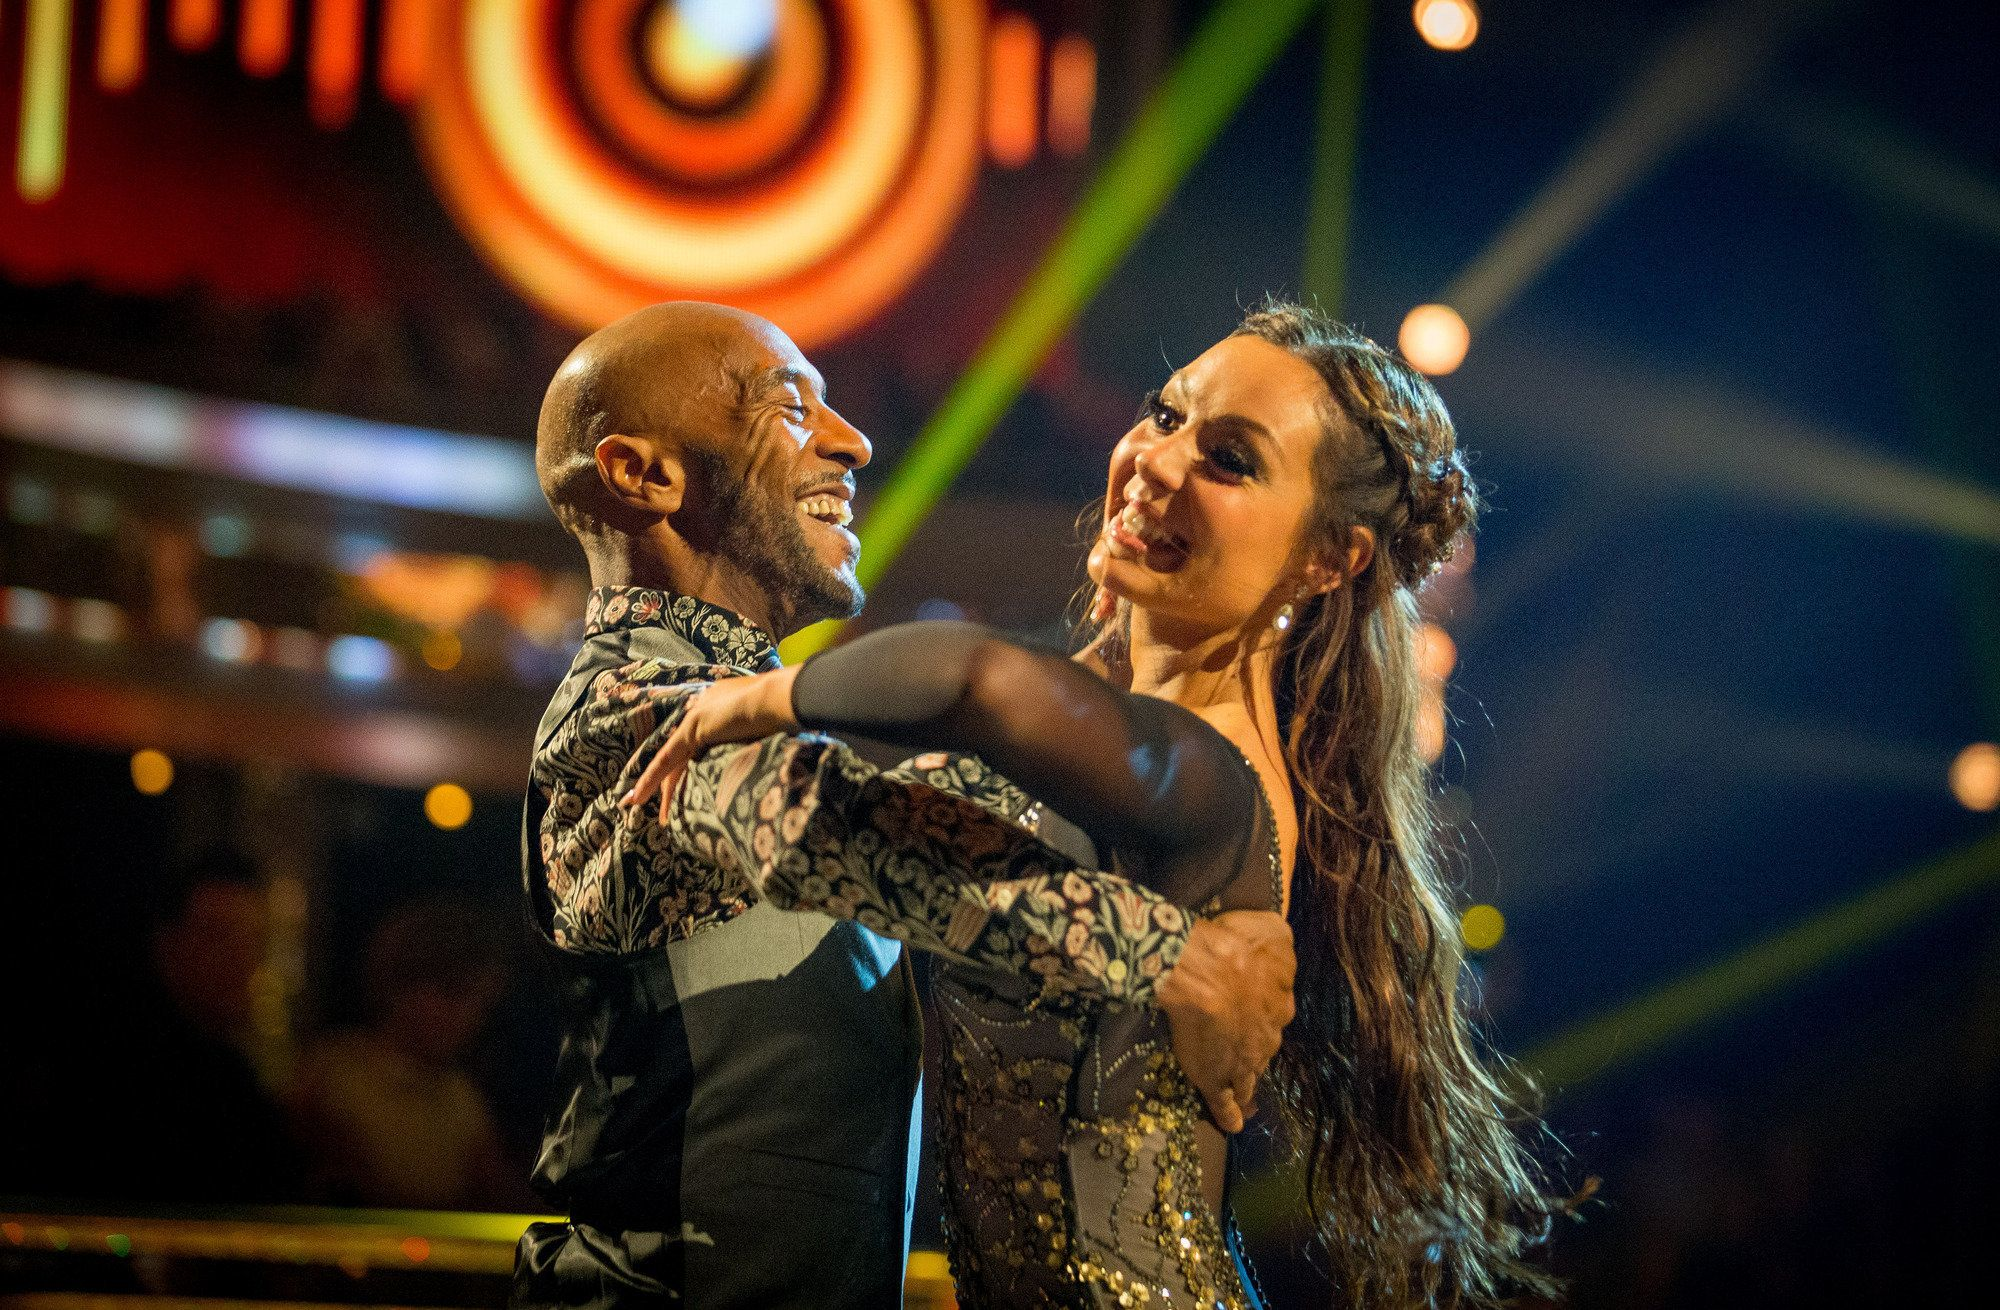 Danny and Amy performing the Quickstep last week